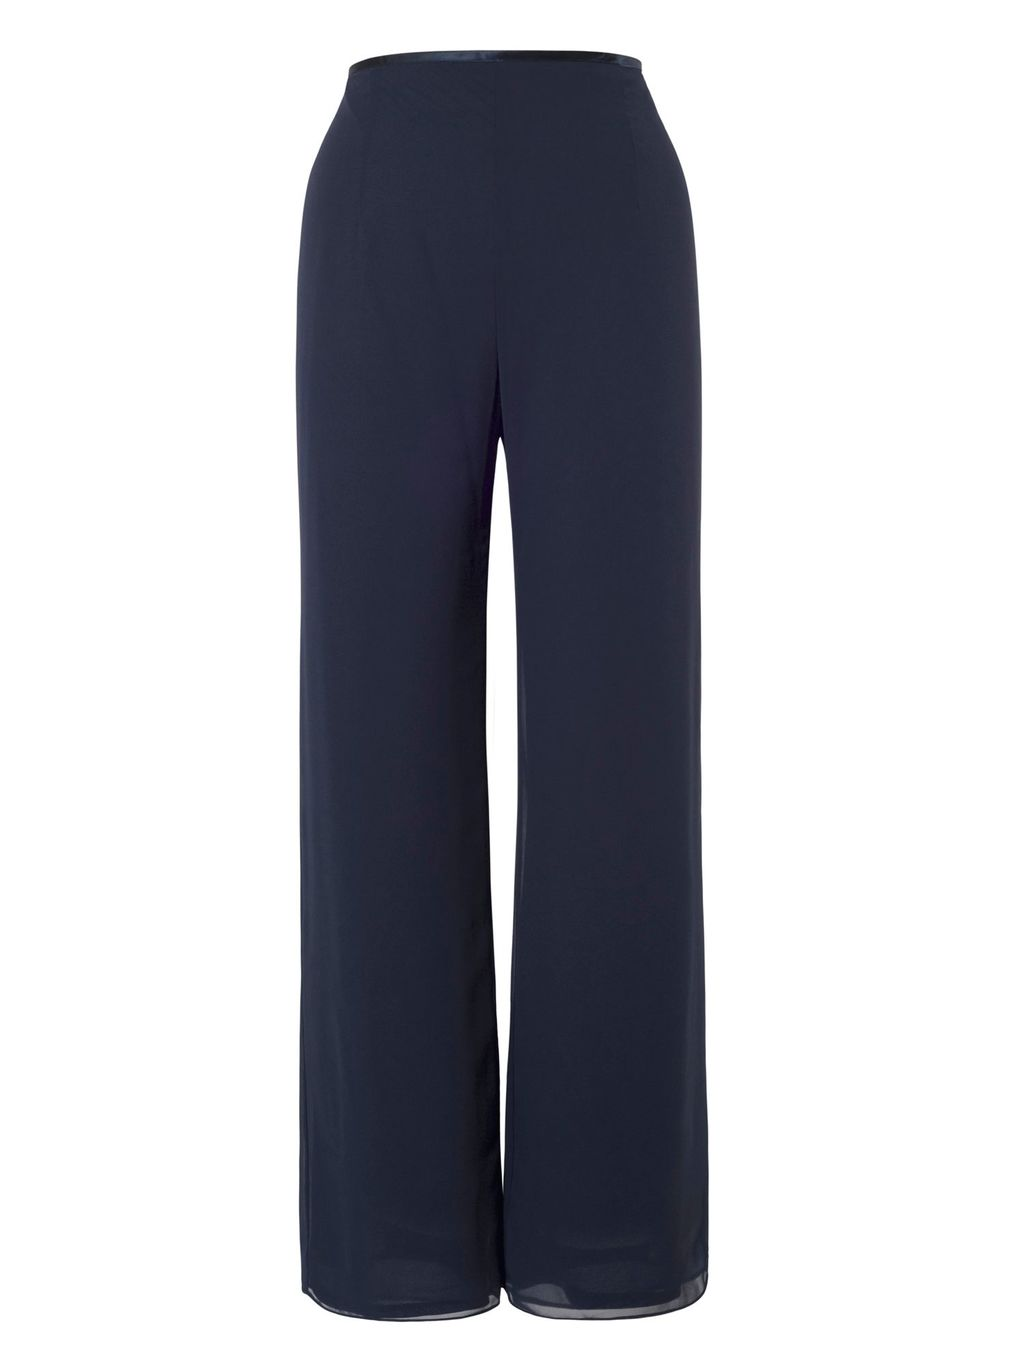 Jersey Lined Chiffon Pant, Navy - length: standard; pattern: plain; waist: high rise; predominant colour: navy; fibres: polyester/polyamide - 100%; fit: straight leg; pattern type: fabric; texture group: jersey - stretchy/drapey; style: standard; occasions: creative work; season: s/s 2016; wardrobe: basic